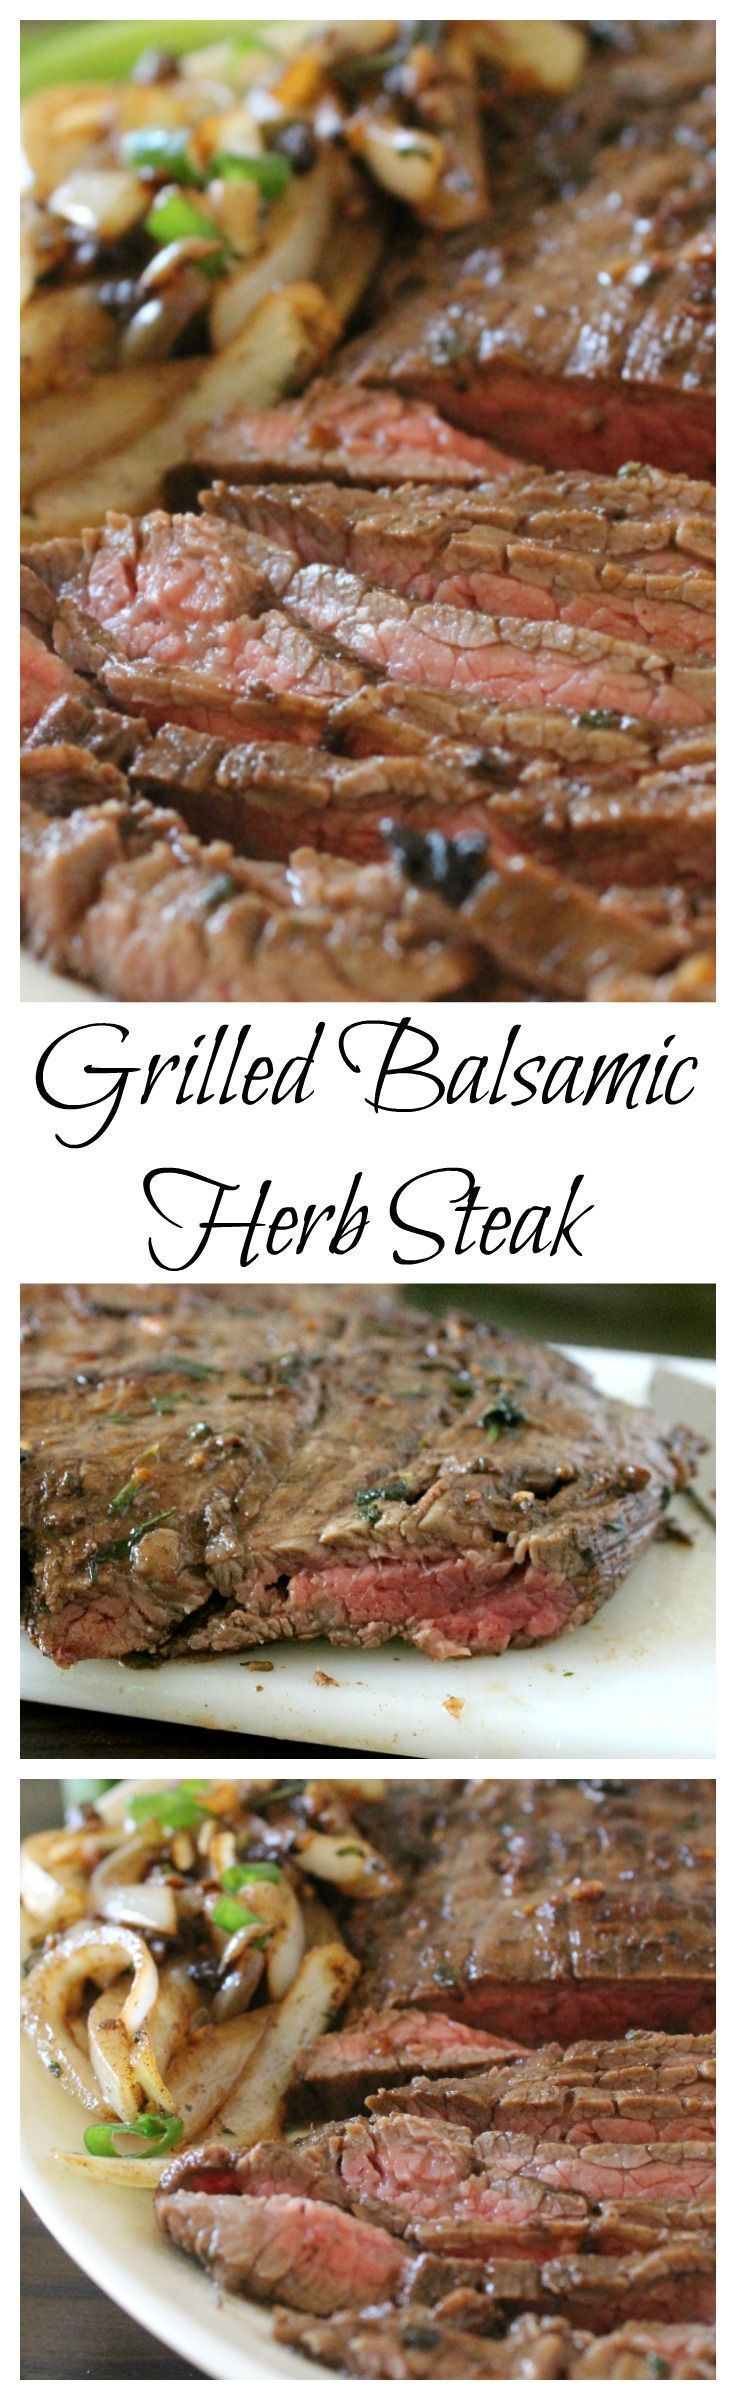 Grilled Balsamic Herb Steak - this recipe is perfect for outdoor entertaining, BBQ goodness at its best. - by Mama Maggie's Kitchen